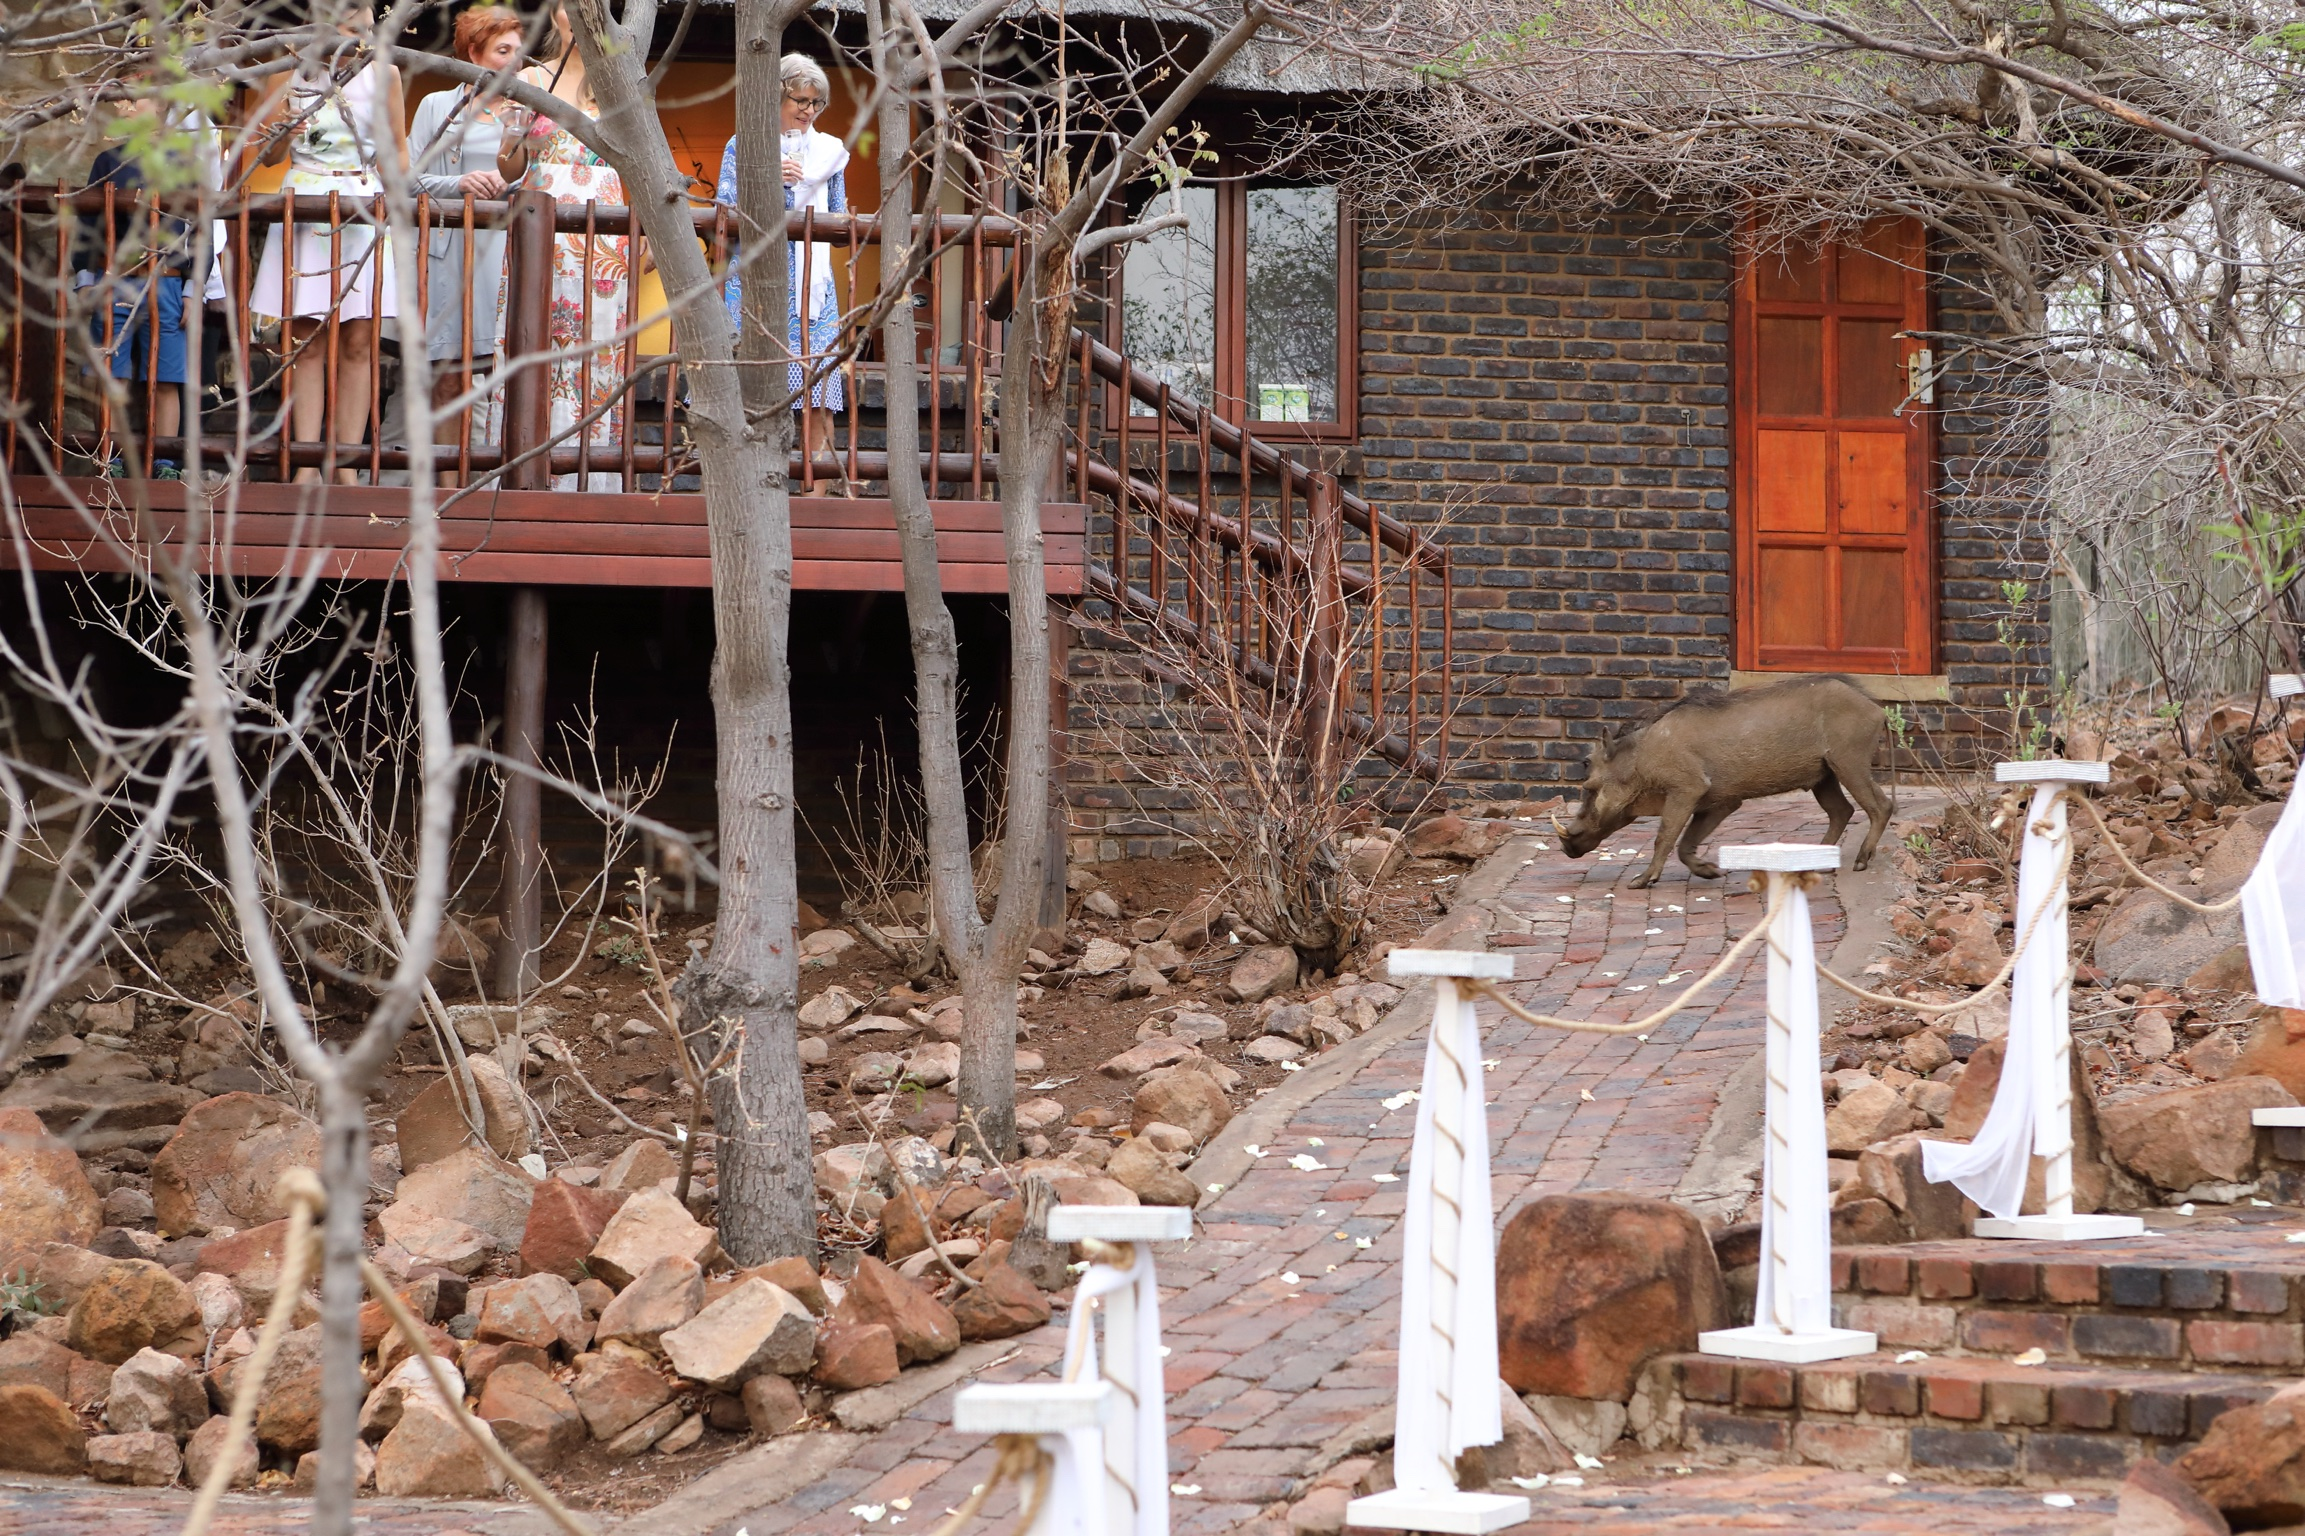 Even the Warthogs were part of the Proceedings.